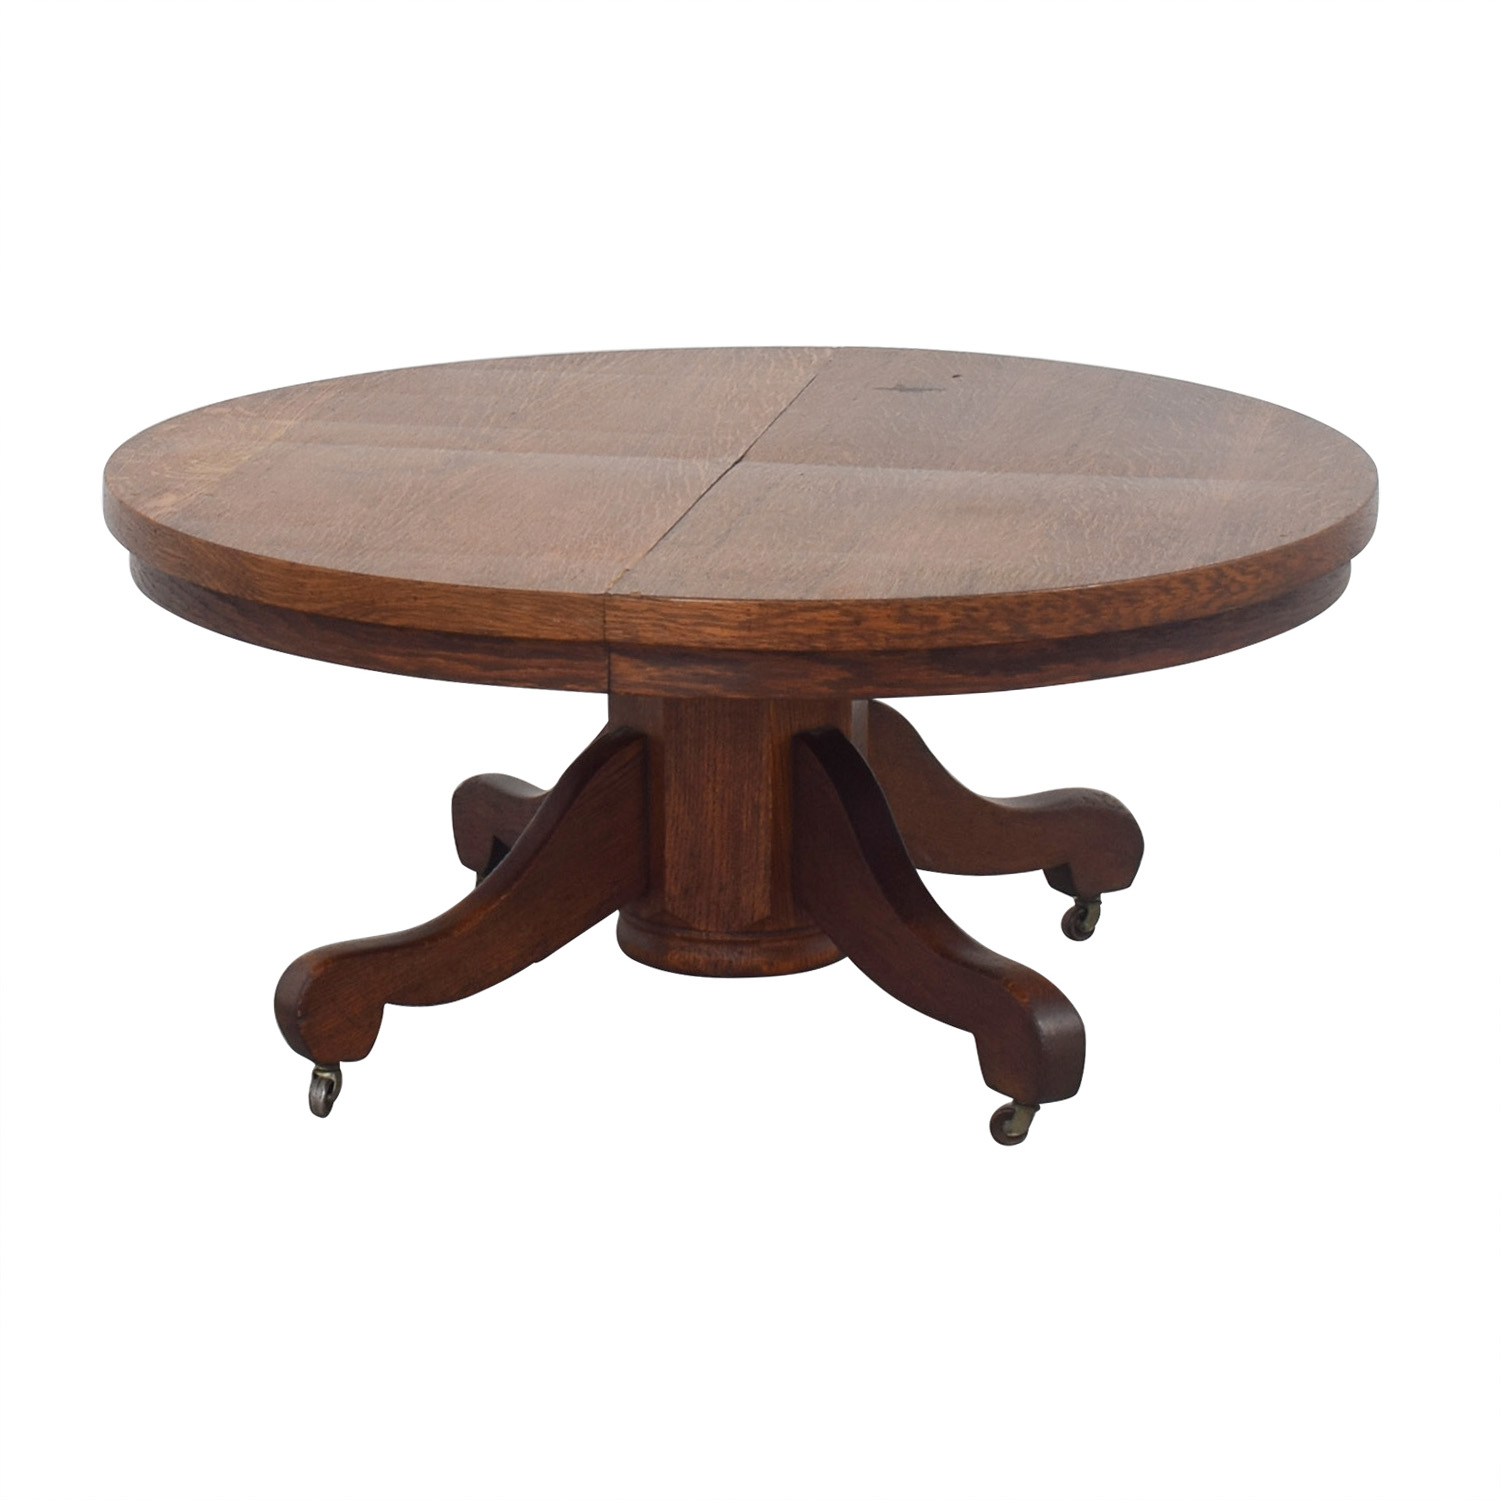 90 Off Round Oak Coffee Table Tables